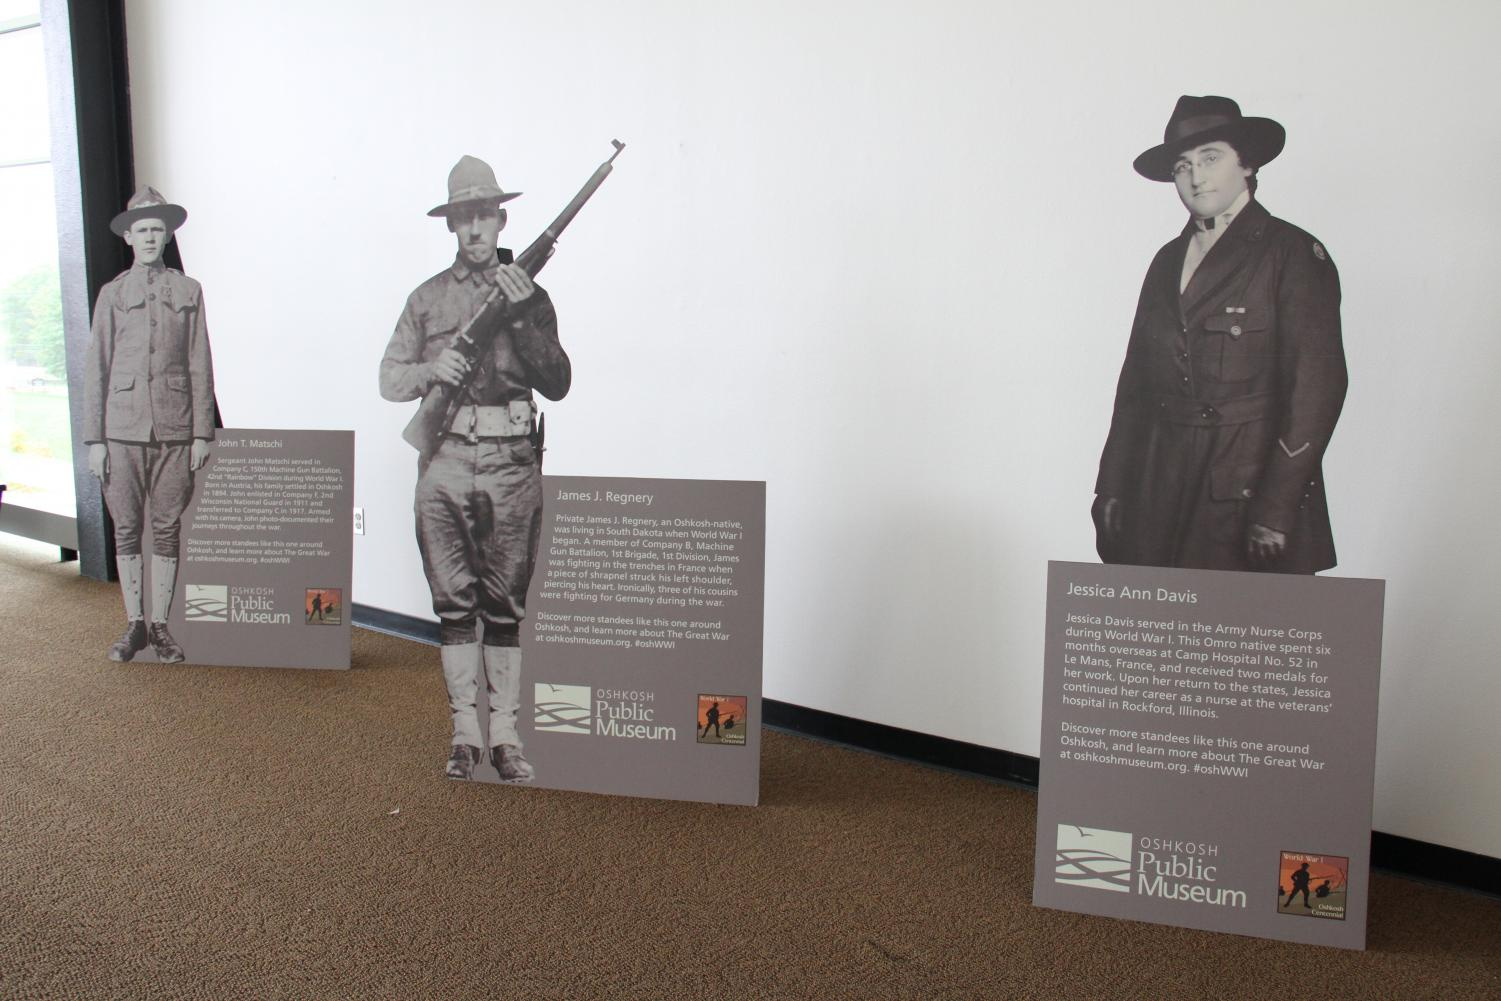 Cutouts of Oshkosh residents during World War I are displayed on the third floor of Reeve Memorial Union.